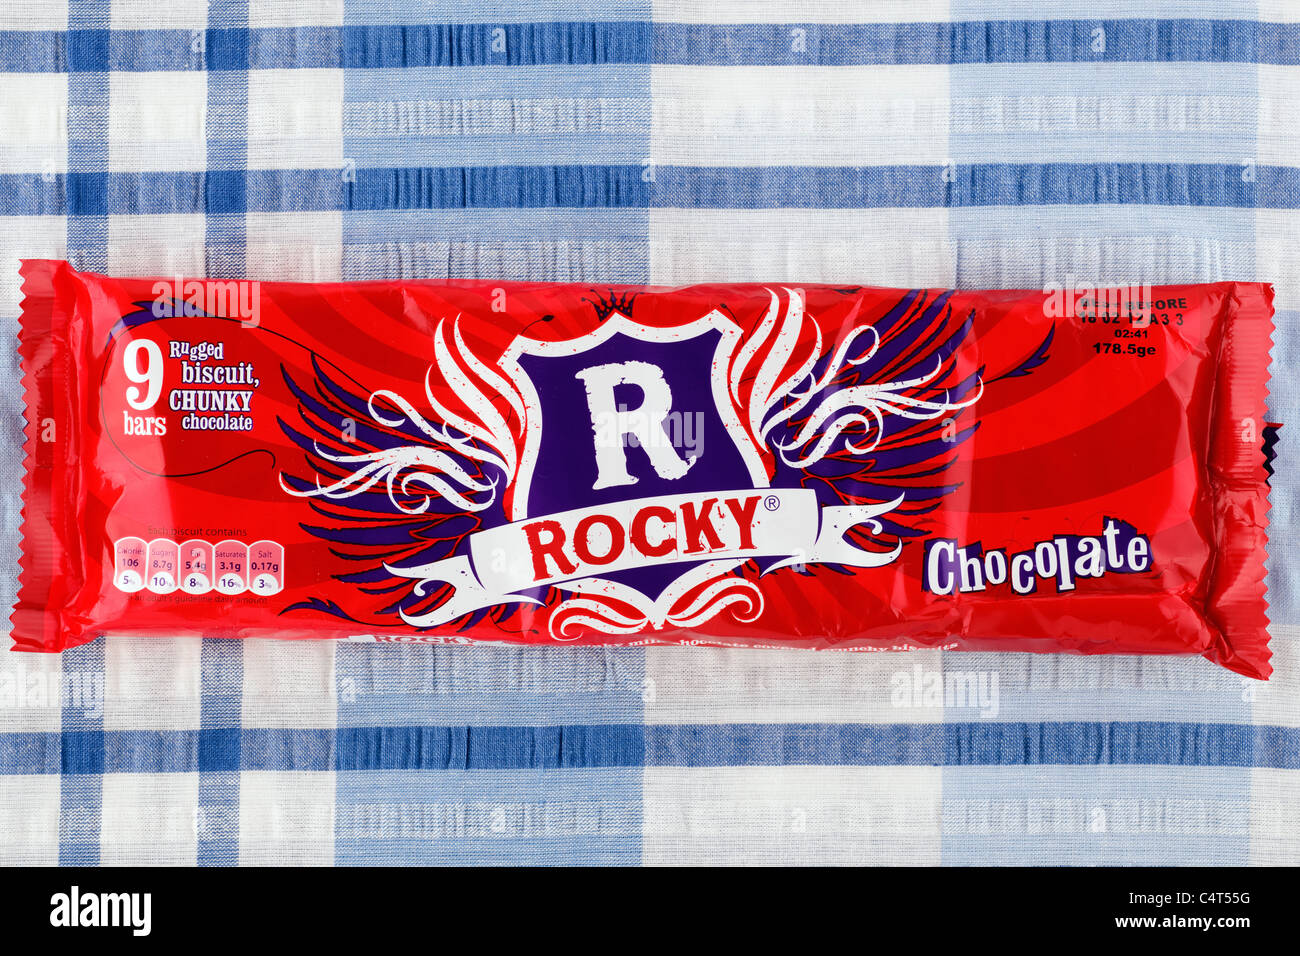 Multipack of 9 individually wrapped Rocky chocolate bars - Stock Image